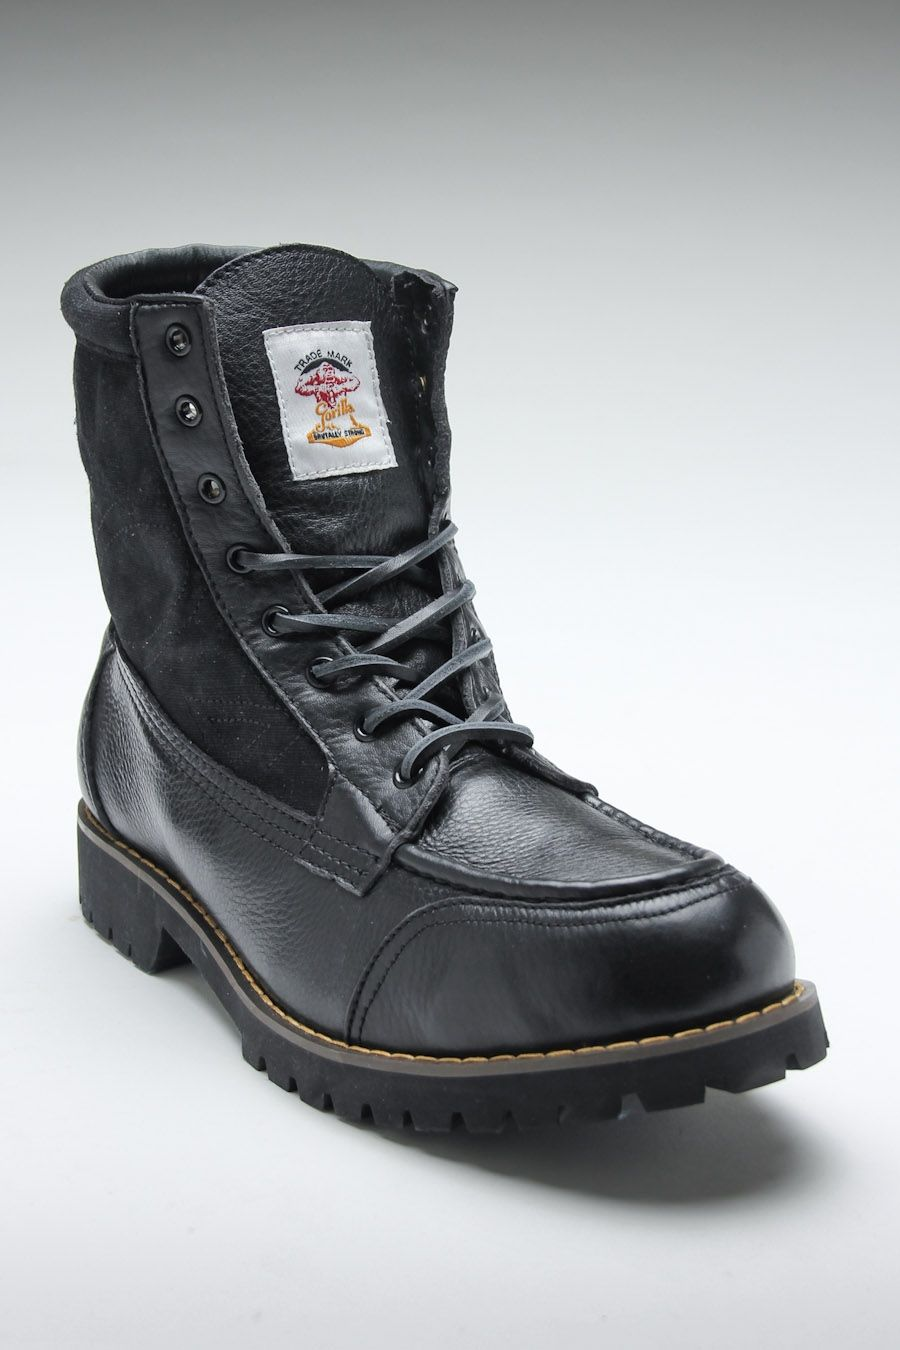 GORILLA 1904 HIKER BOOT BLACK